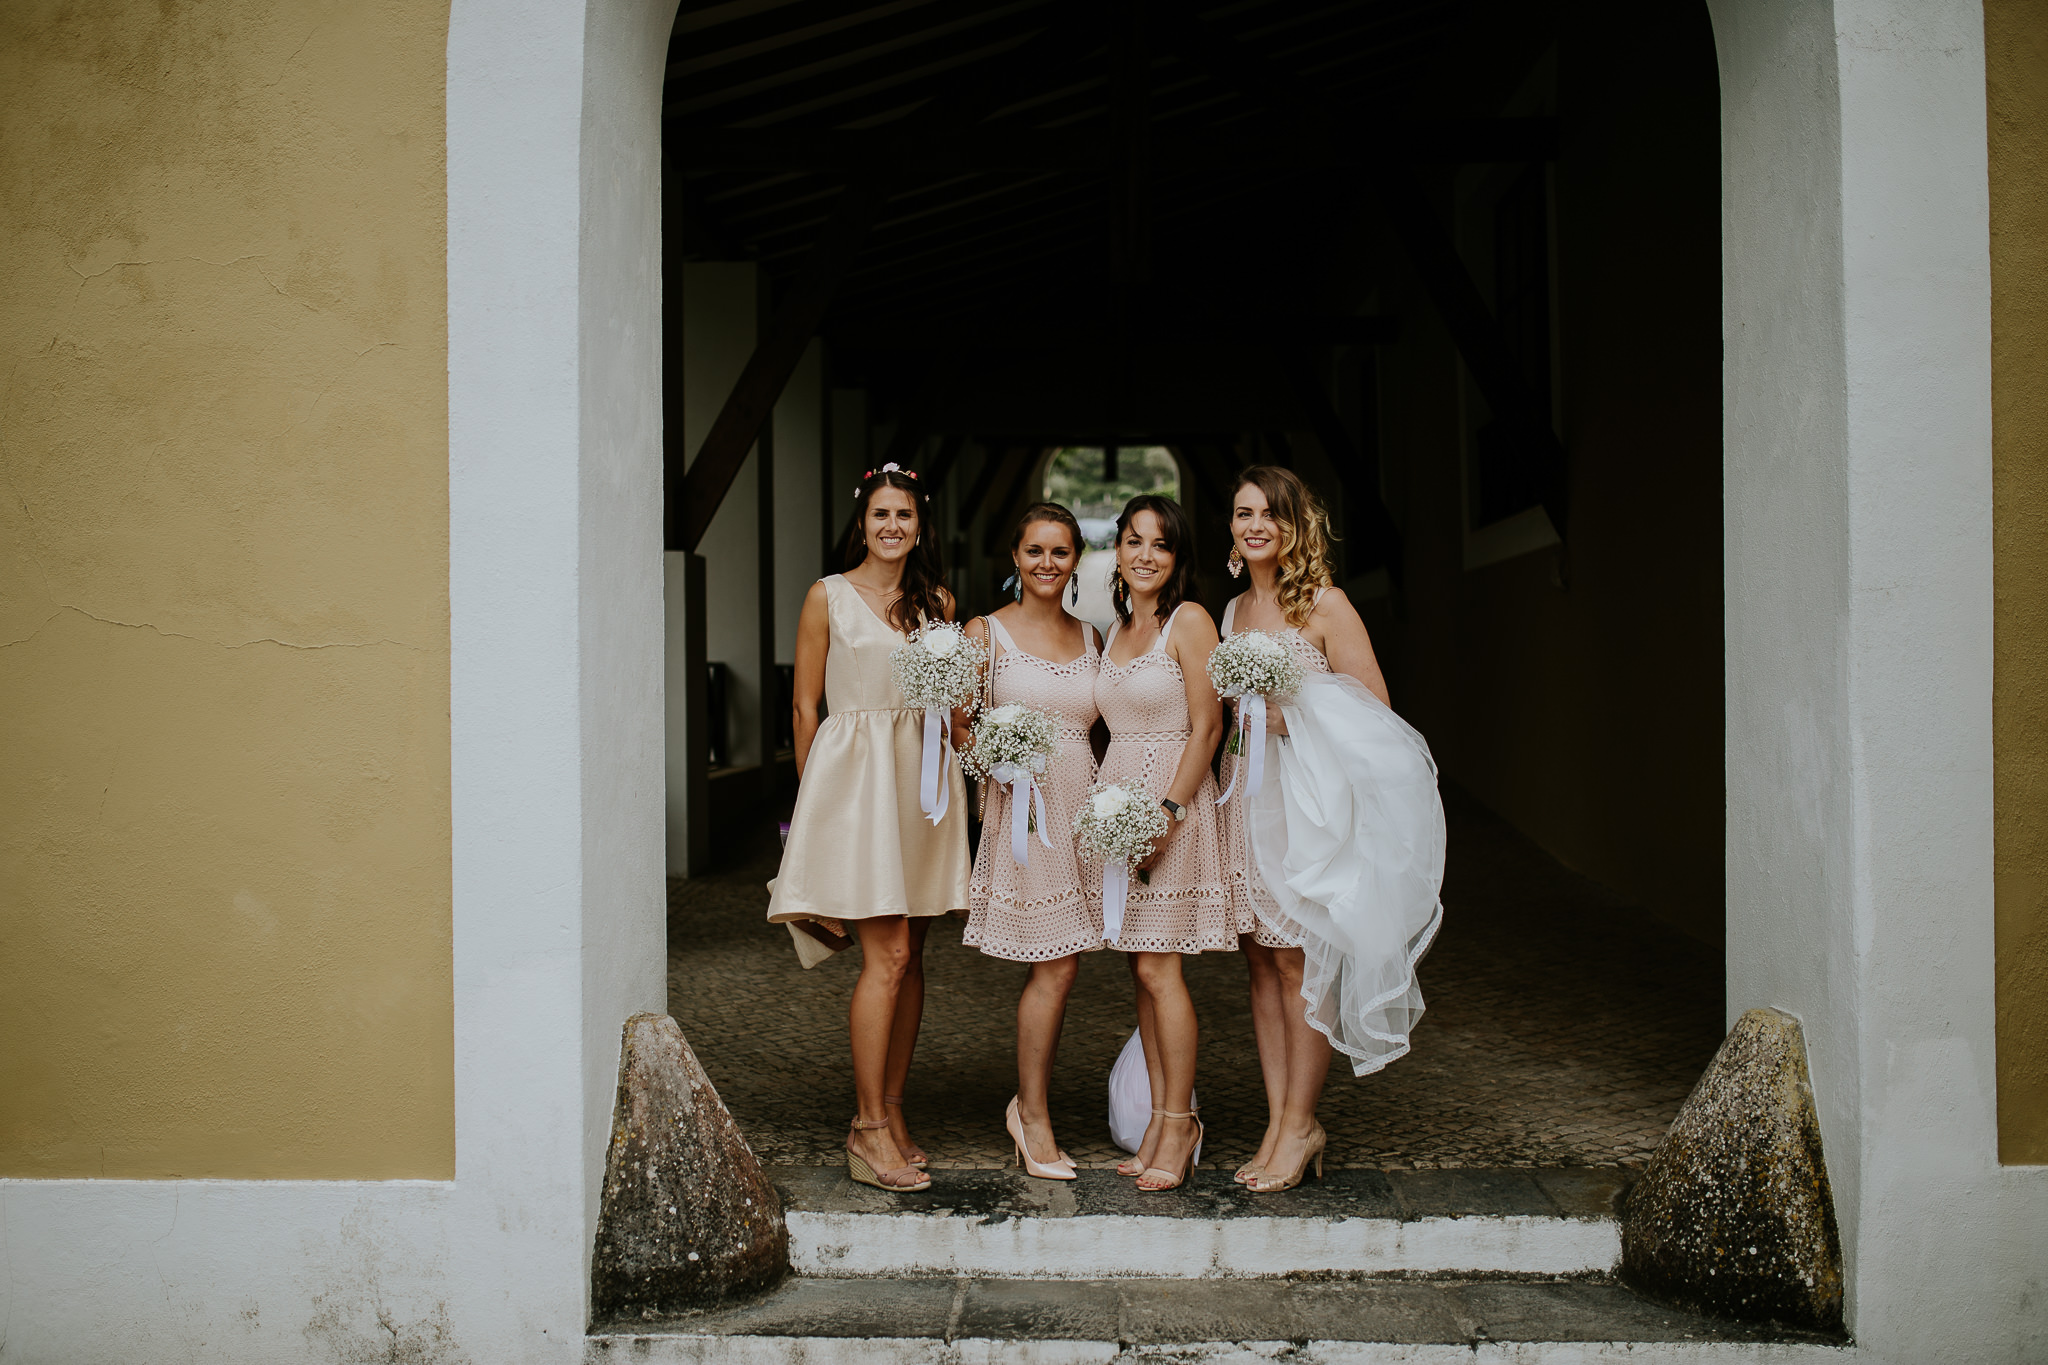 romina_thomas_destination_wedding_photography_fotografia_de_casamento_lisbon_sintra_penha_longa_resort-56